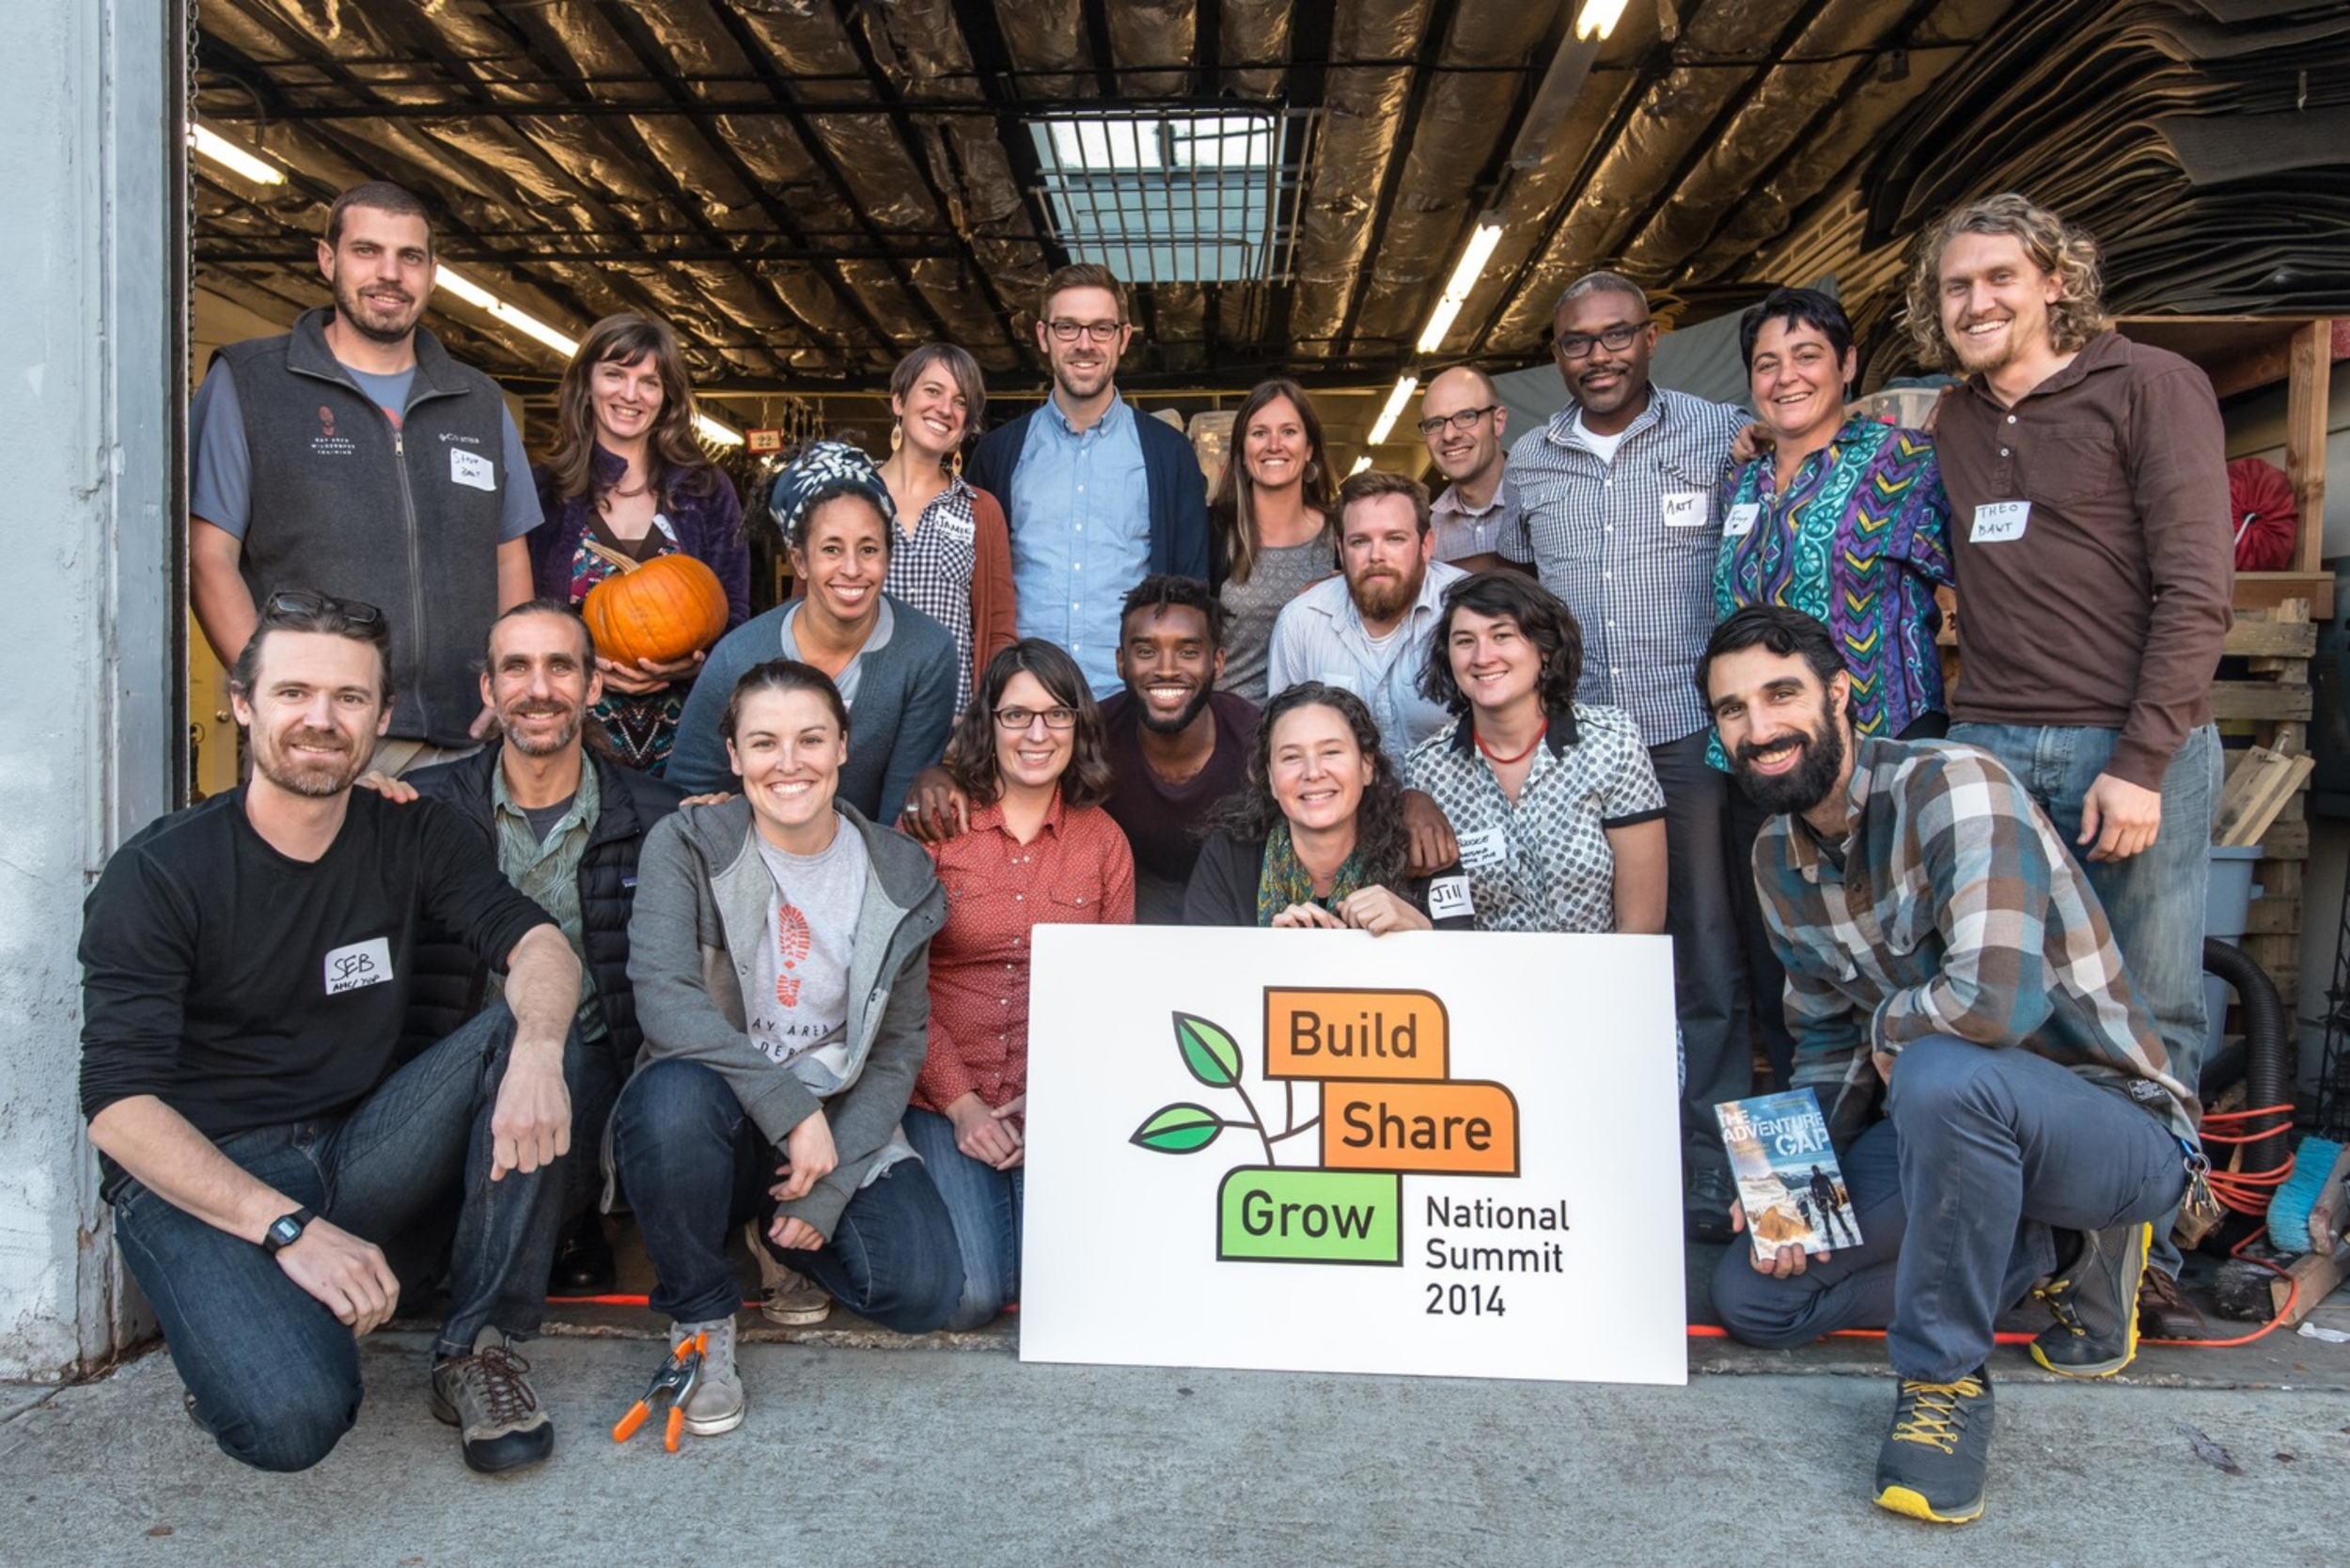 The 2014 Summit attendees represented people working to connect kids to nature in 10 cities from Portland, ME, and New York City, to Seattle, WA and everywhere in-between!